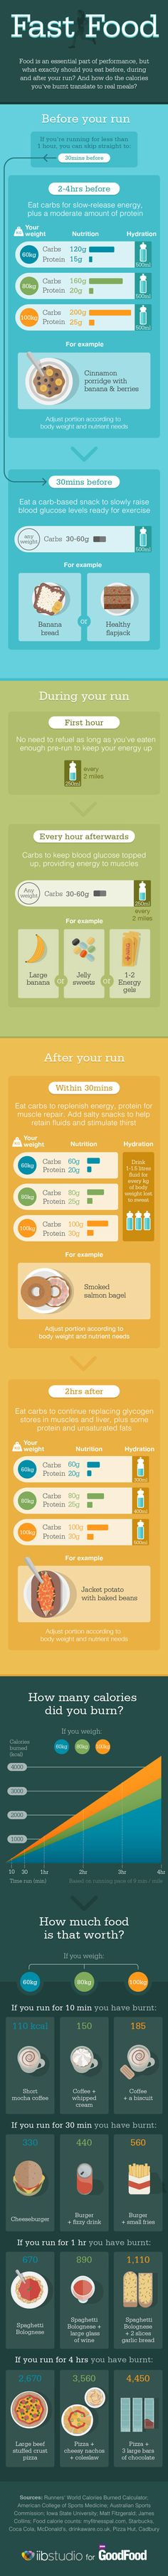 Nutrition for runners - infographic | BBC Good Food